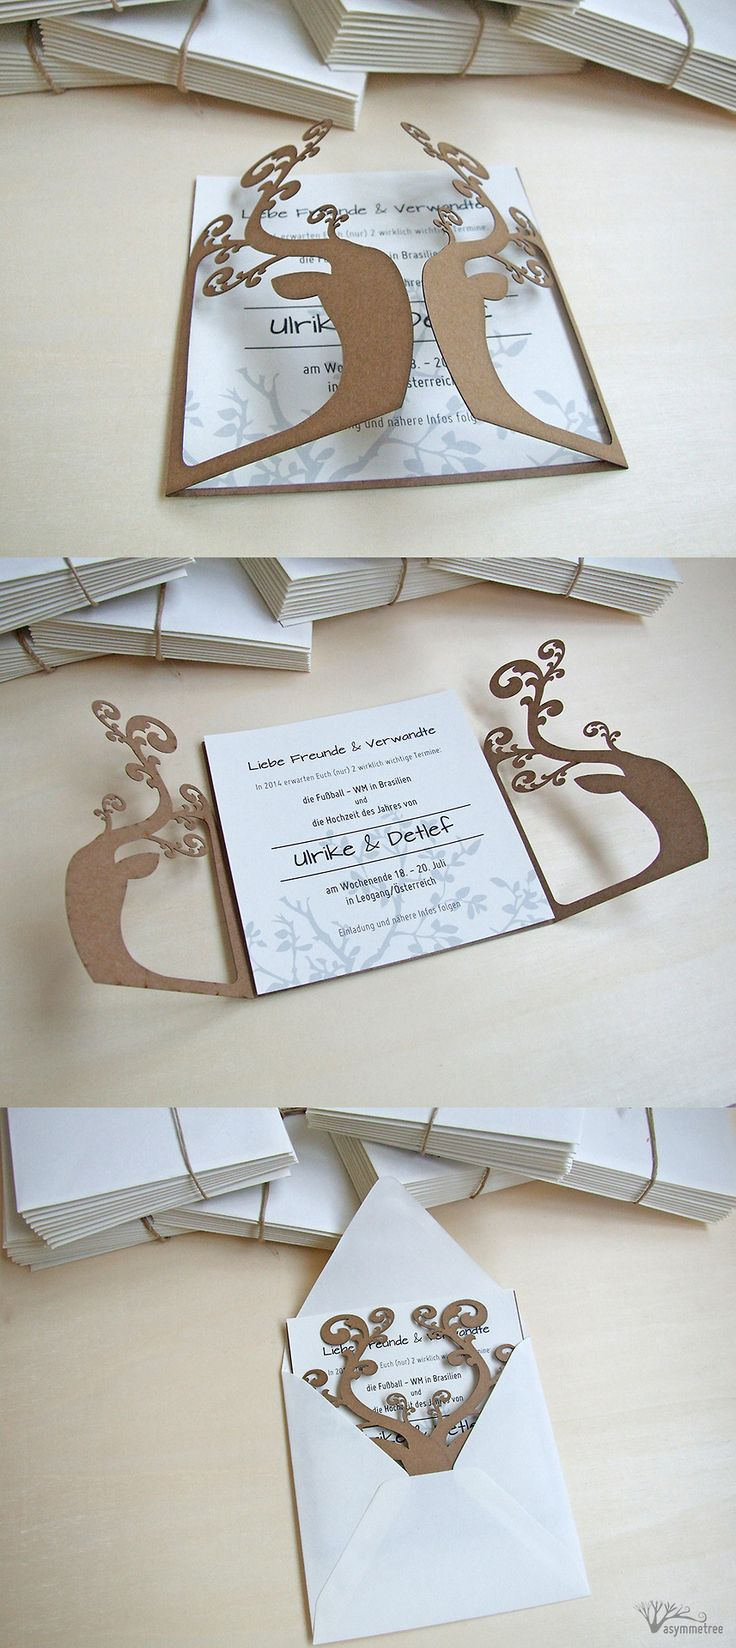 ♥ Laser Cut Wedding Invitations by Asymmetree